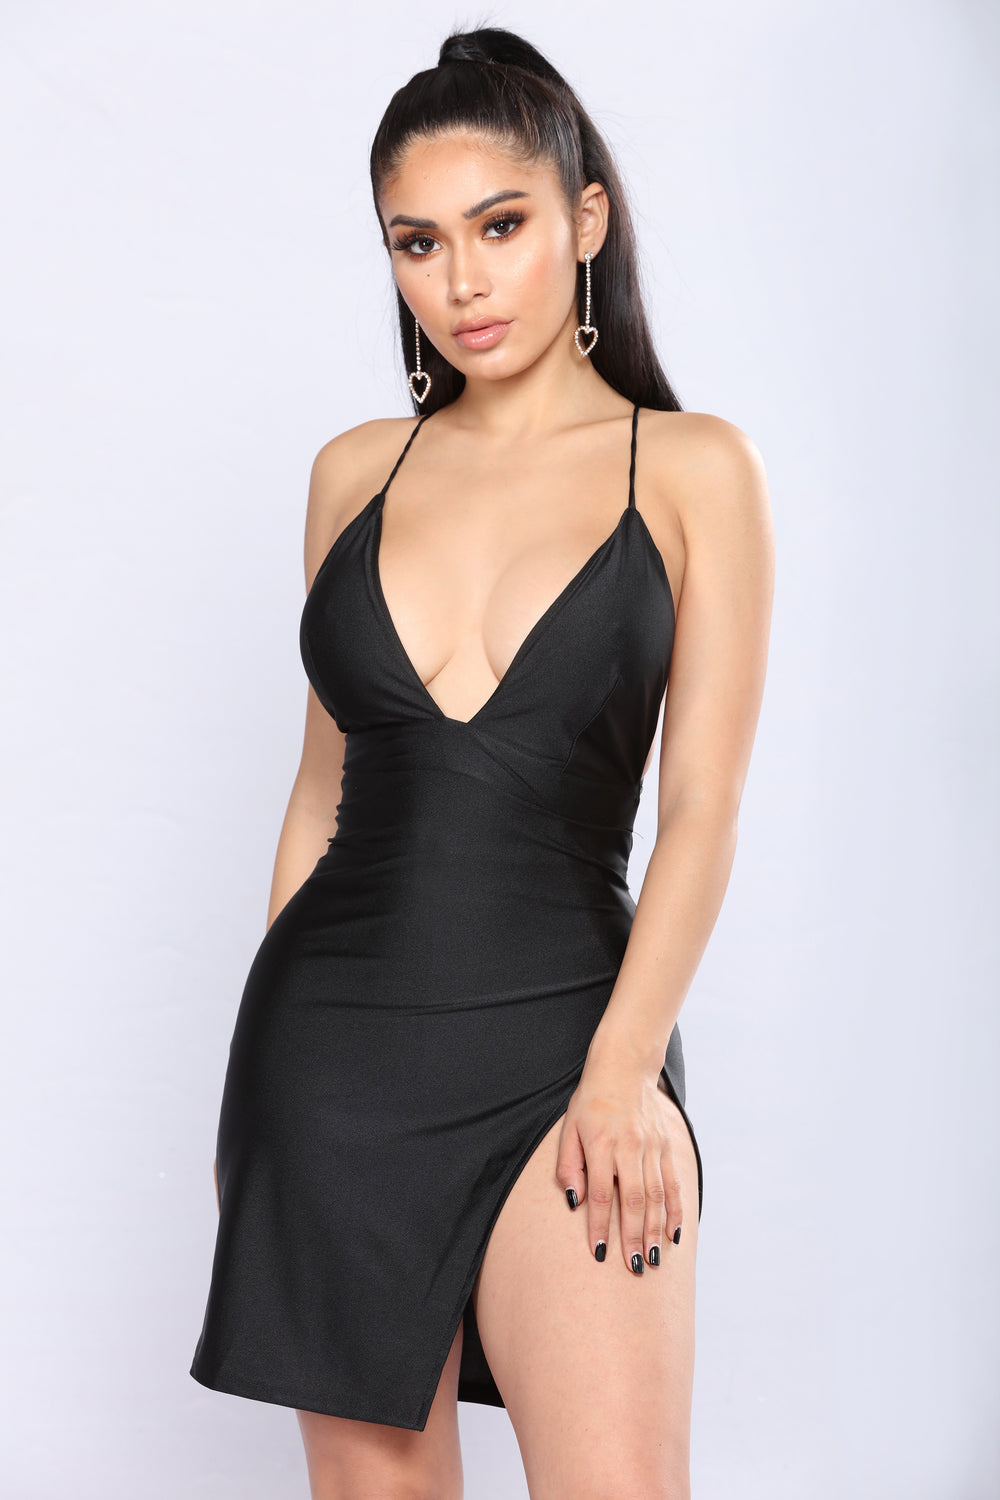 Can't Tell Me Nothing Dress - Black